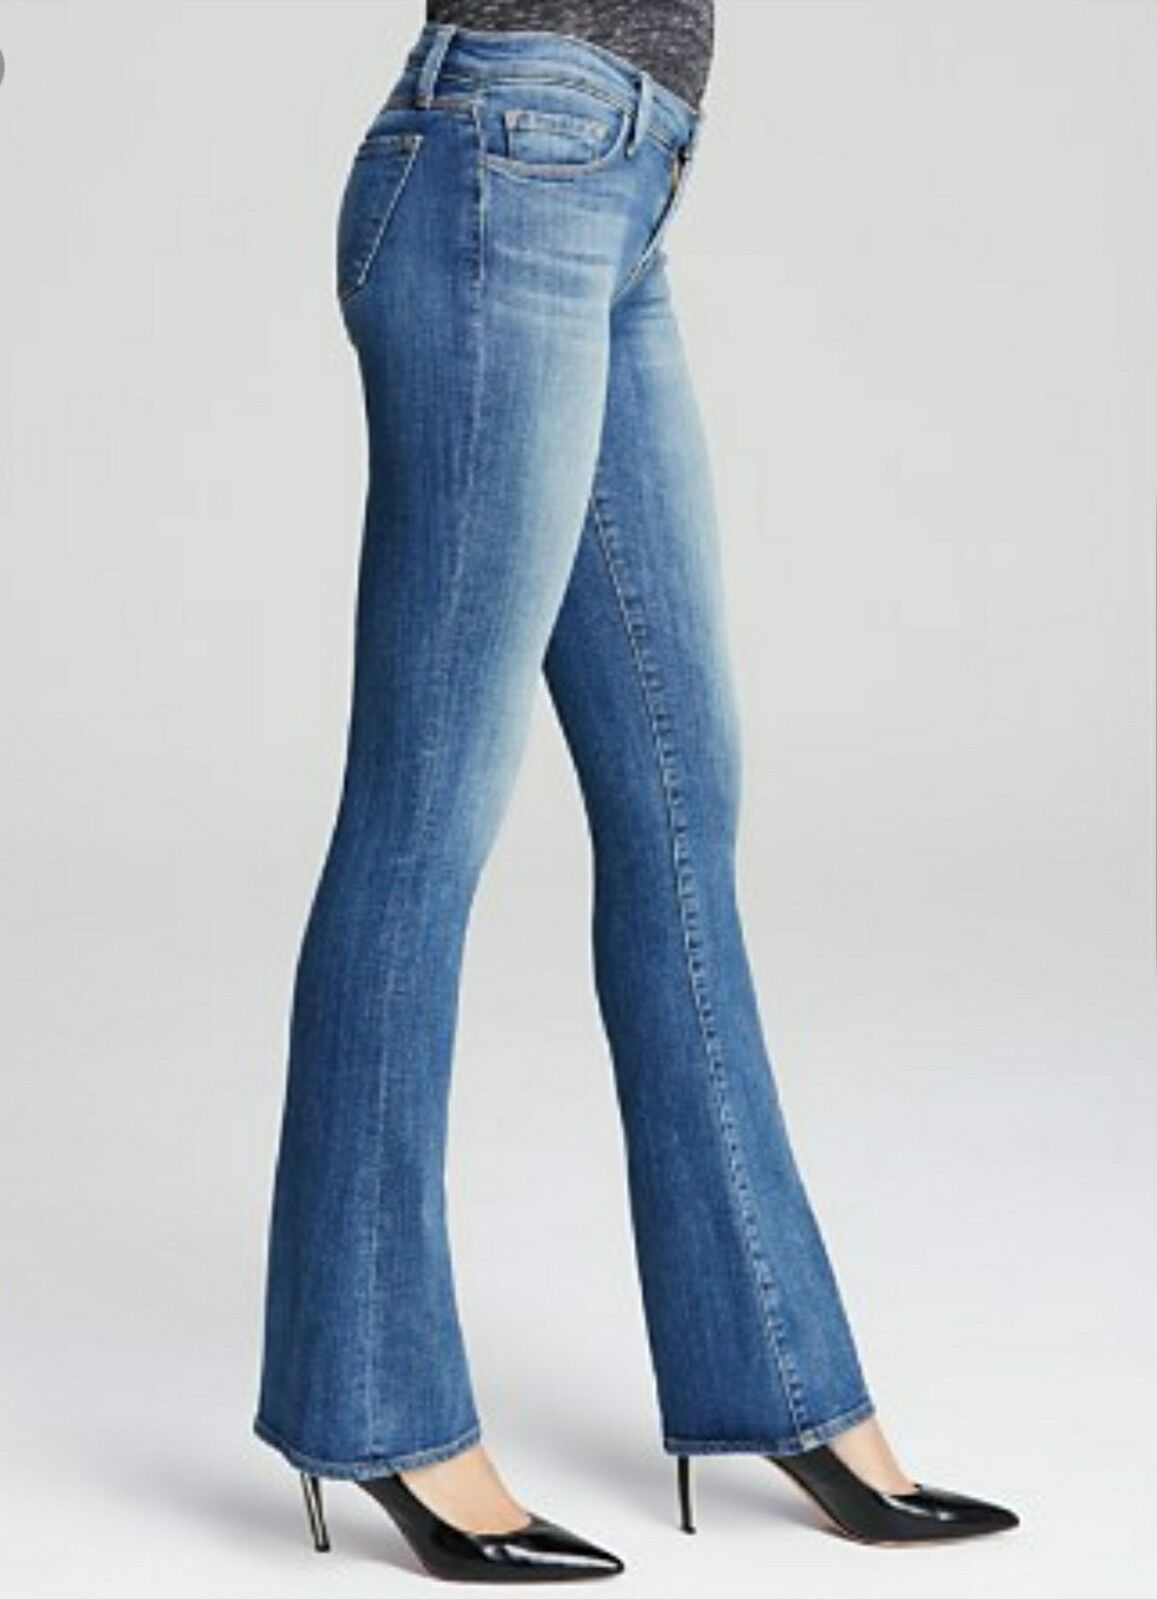 265 J Brand  Betty  Designer Bootcut Jeans Cali  Disclosure  Wash Womens 26 31